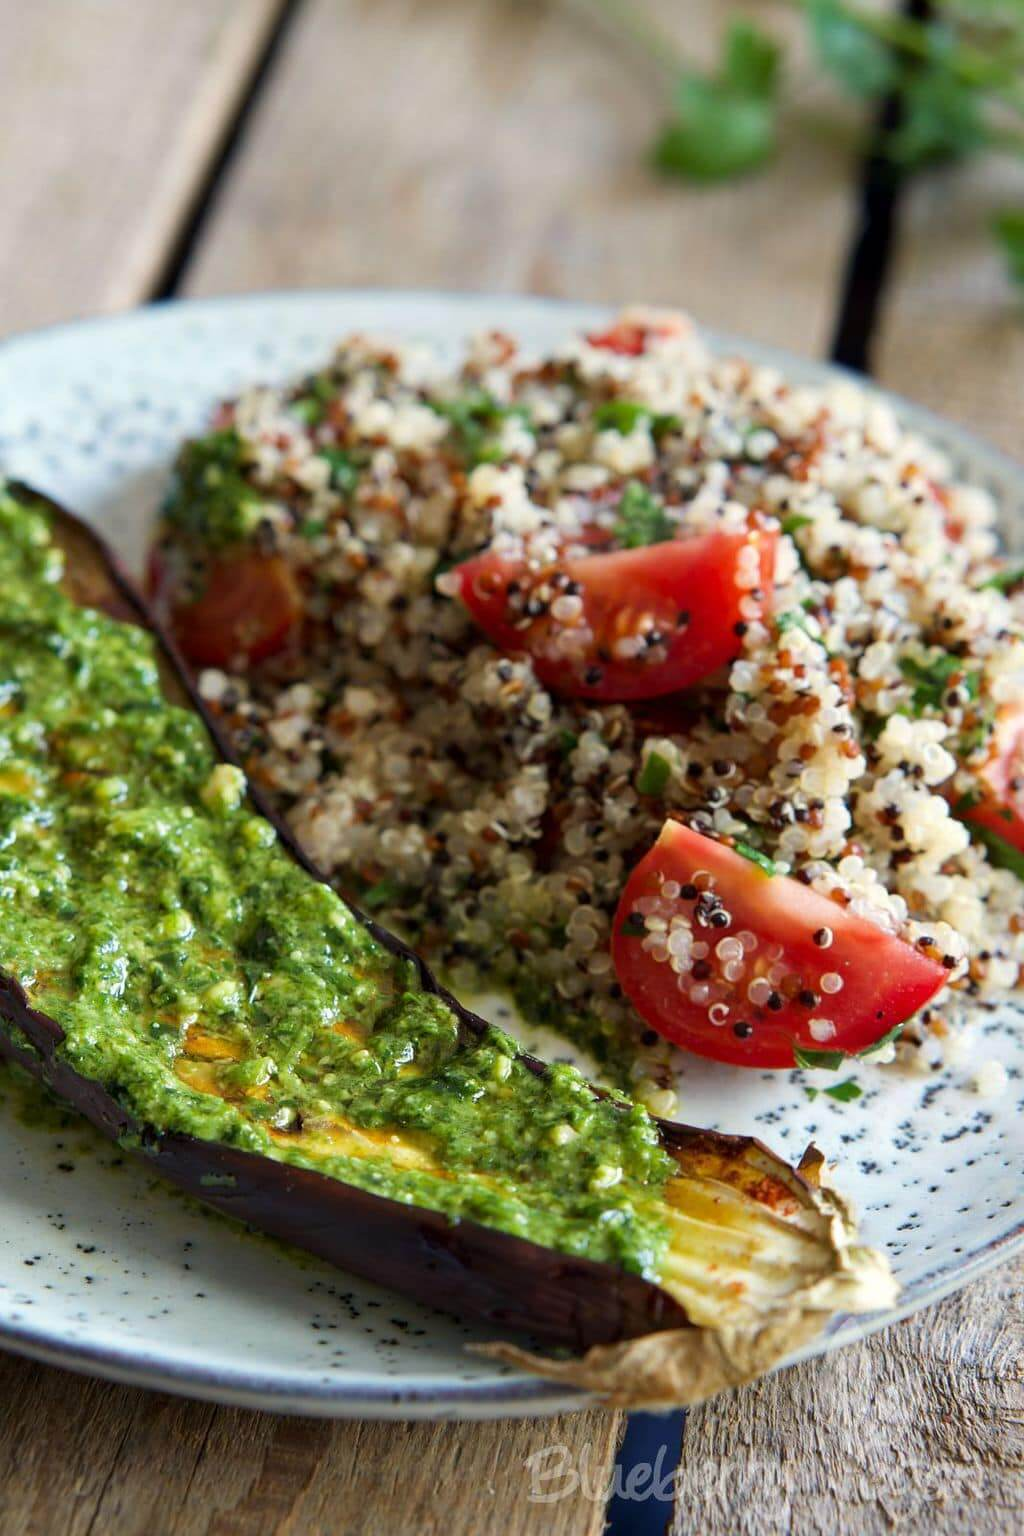 Vegan Baked Eggplant with Warm Quinoa Tabbouleh